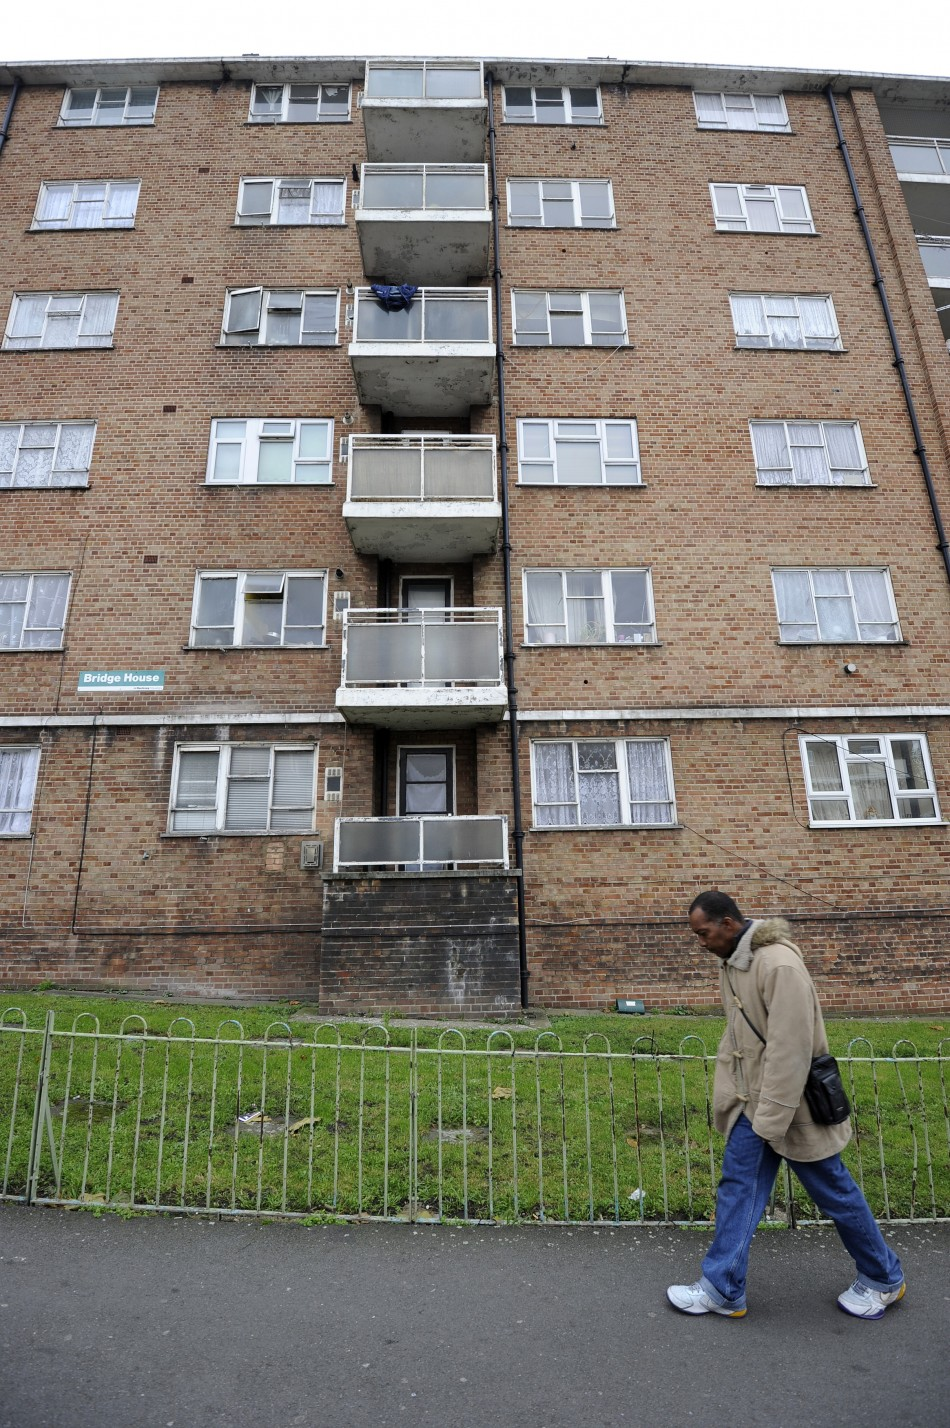 UK council housing